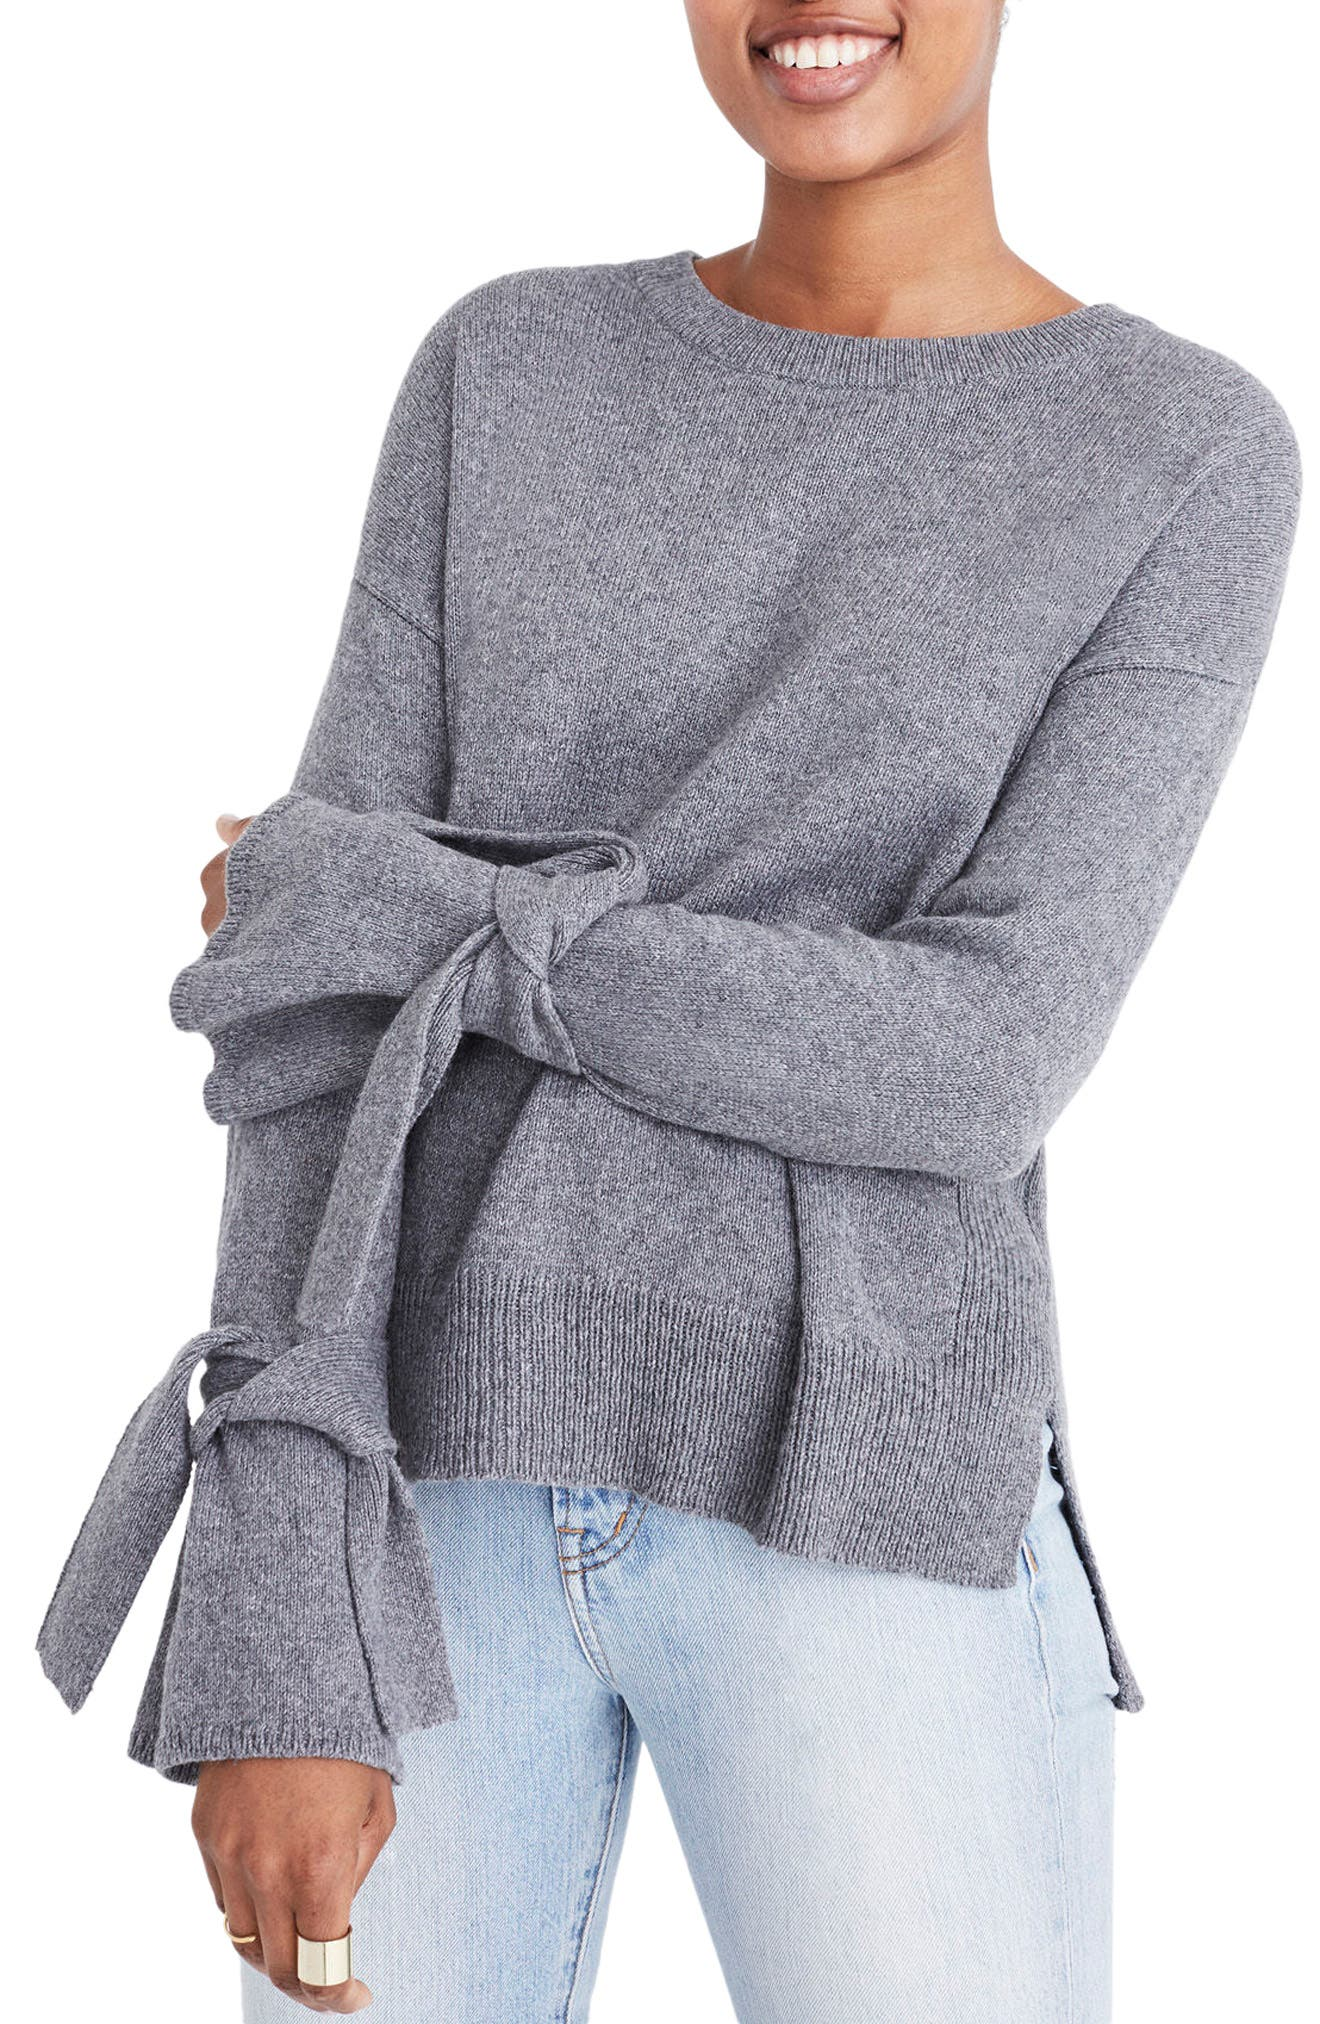 Main Image - Madewell Tie Cuff Pullover Sweater